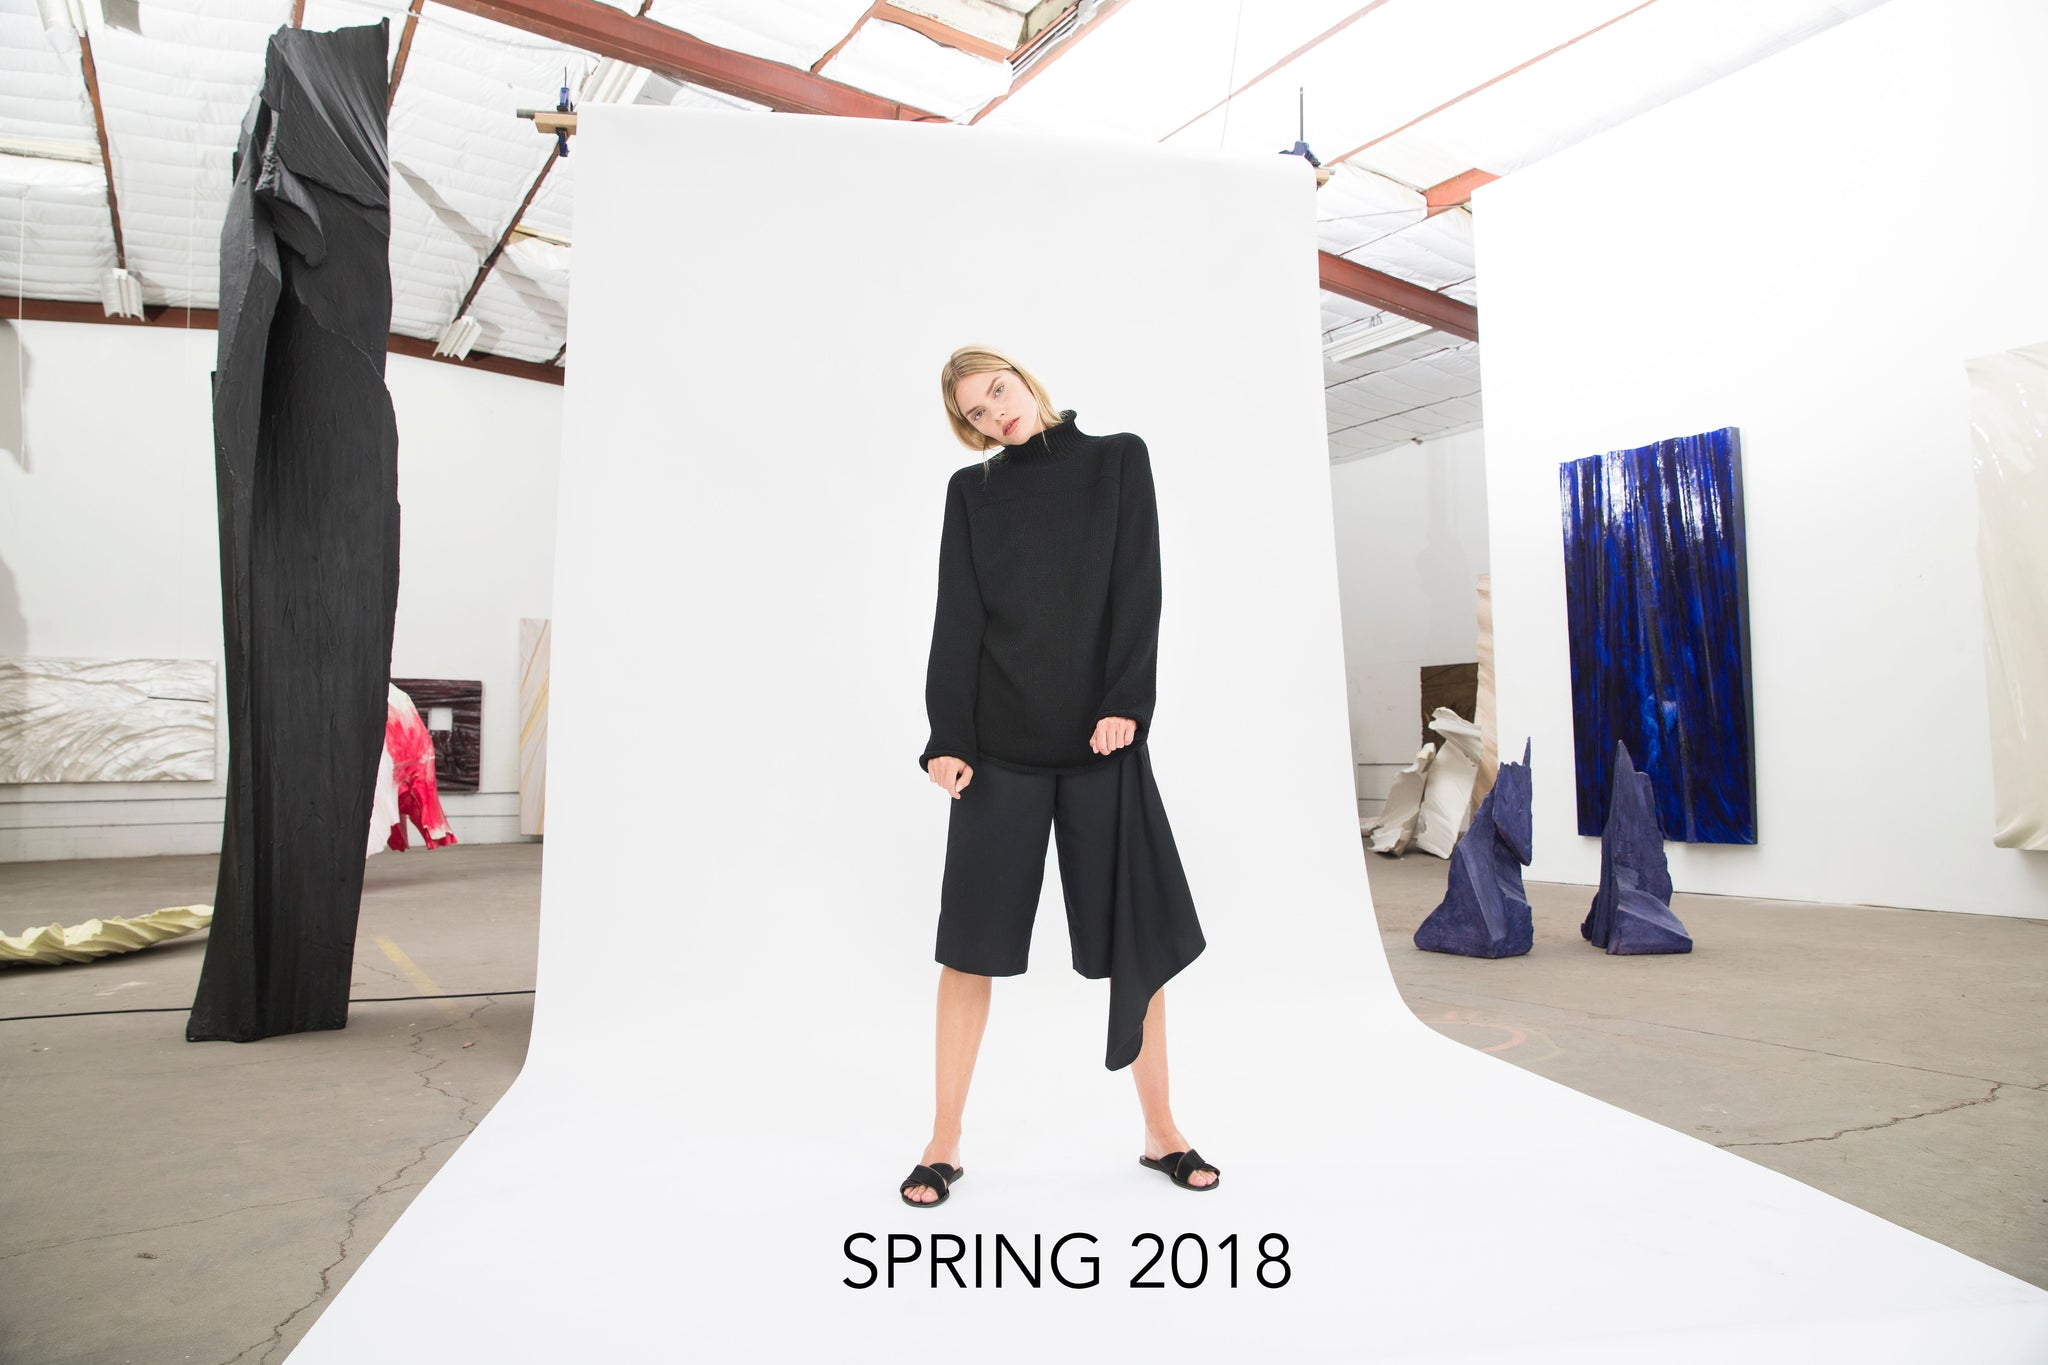 Syl Markt Spring 2018 Collection